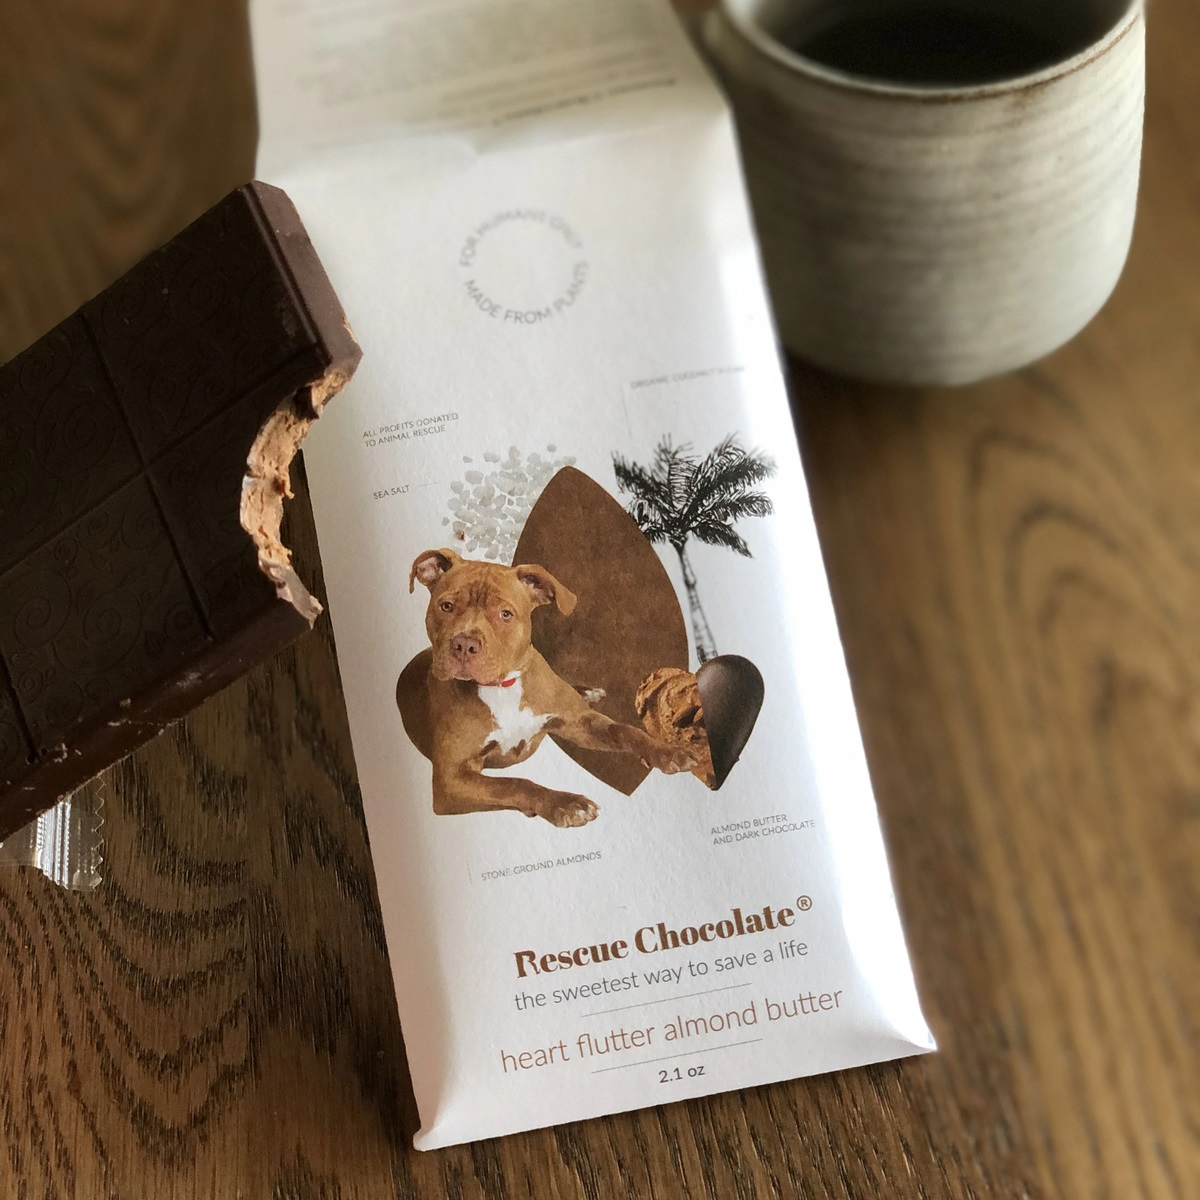 Guide to the Best Dairy-Free Valentine Chocolate: Over 20 Chocolatiers with Vegan, Gluten-Free, Food Allergy-Friendly, Organic, Fair Trade and more! Pictured: Rescue Chocolate